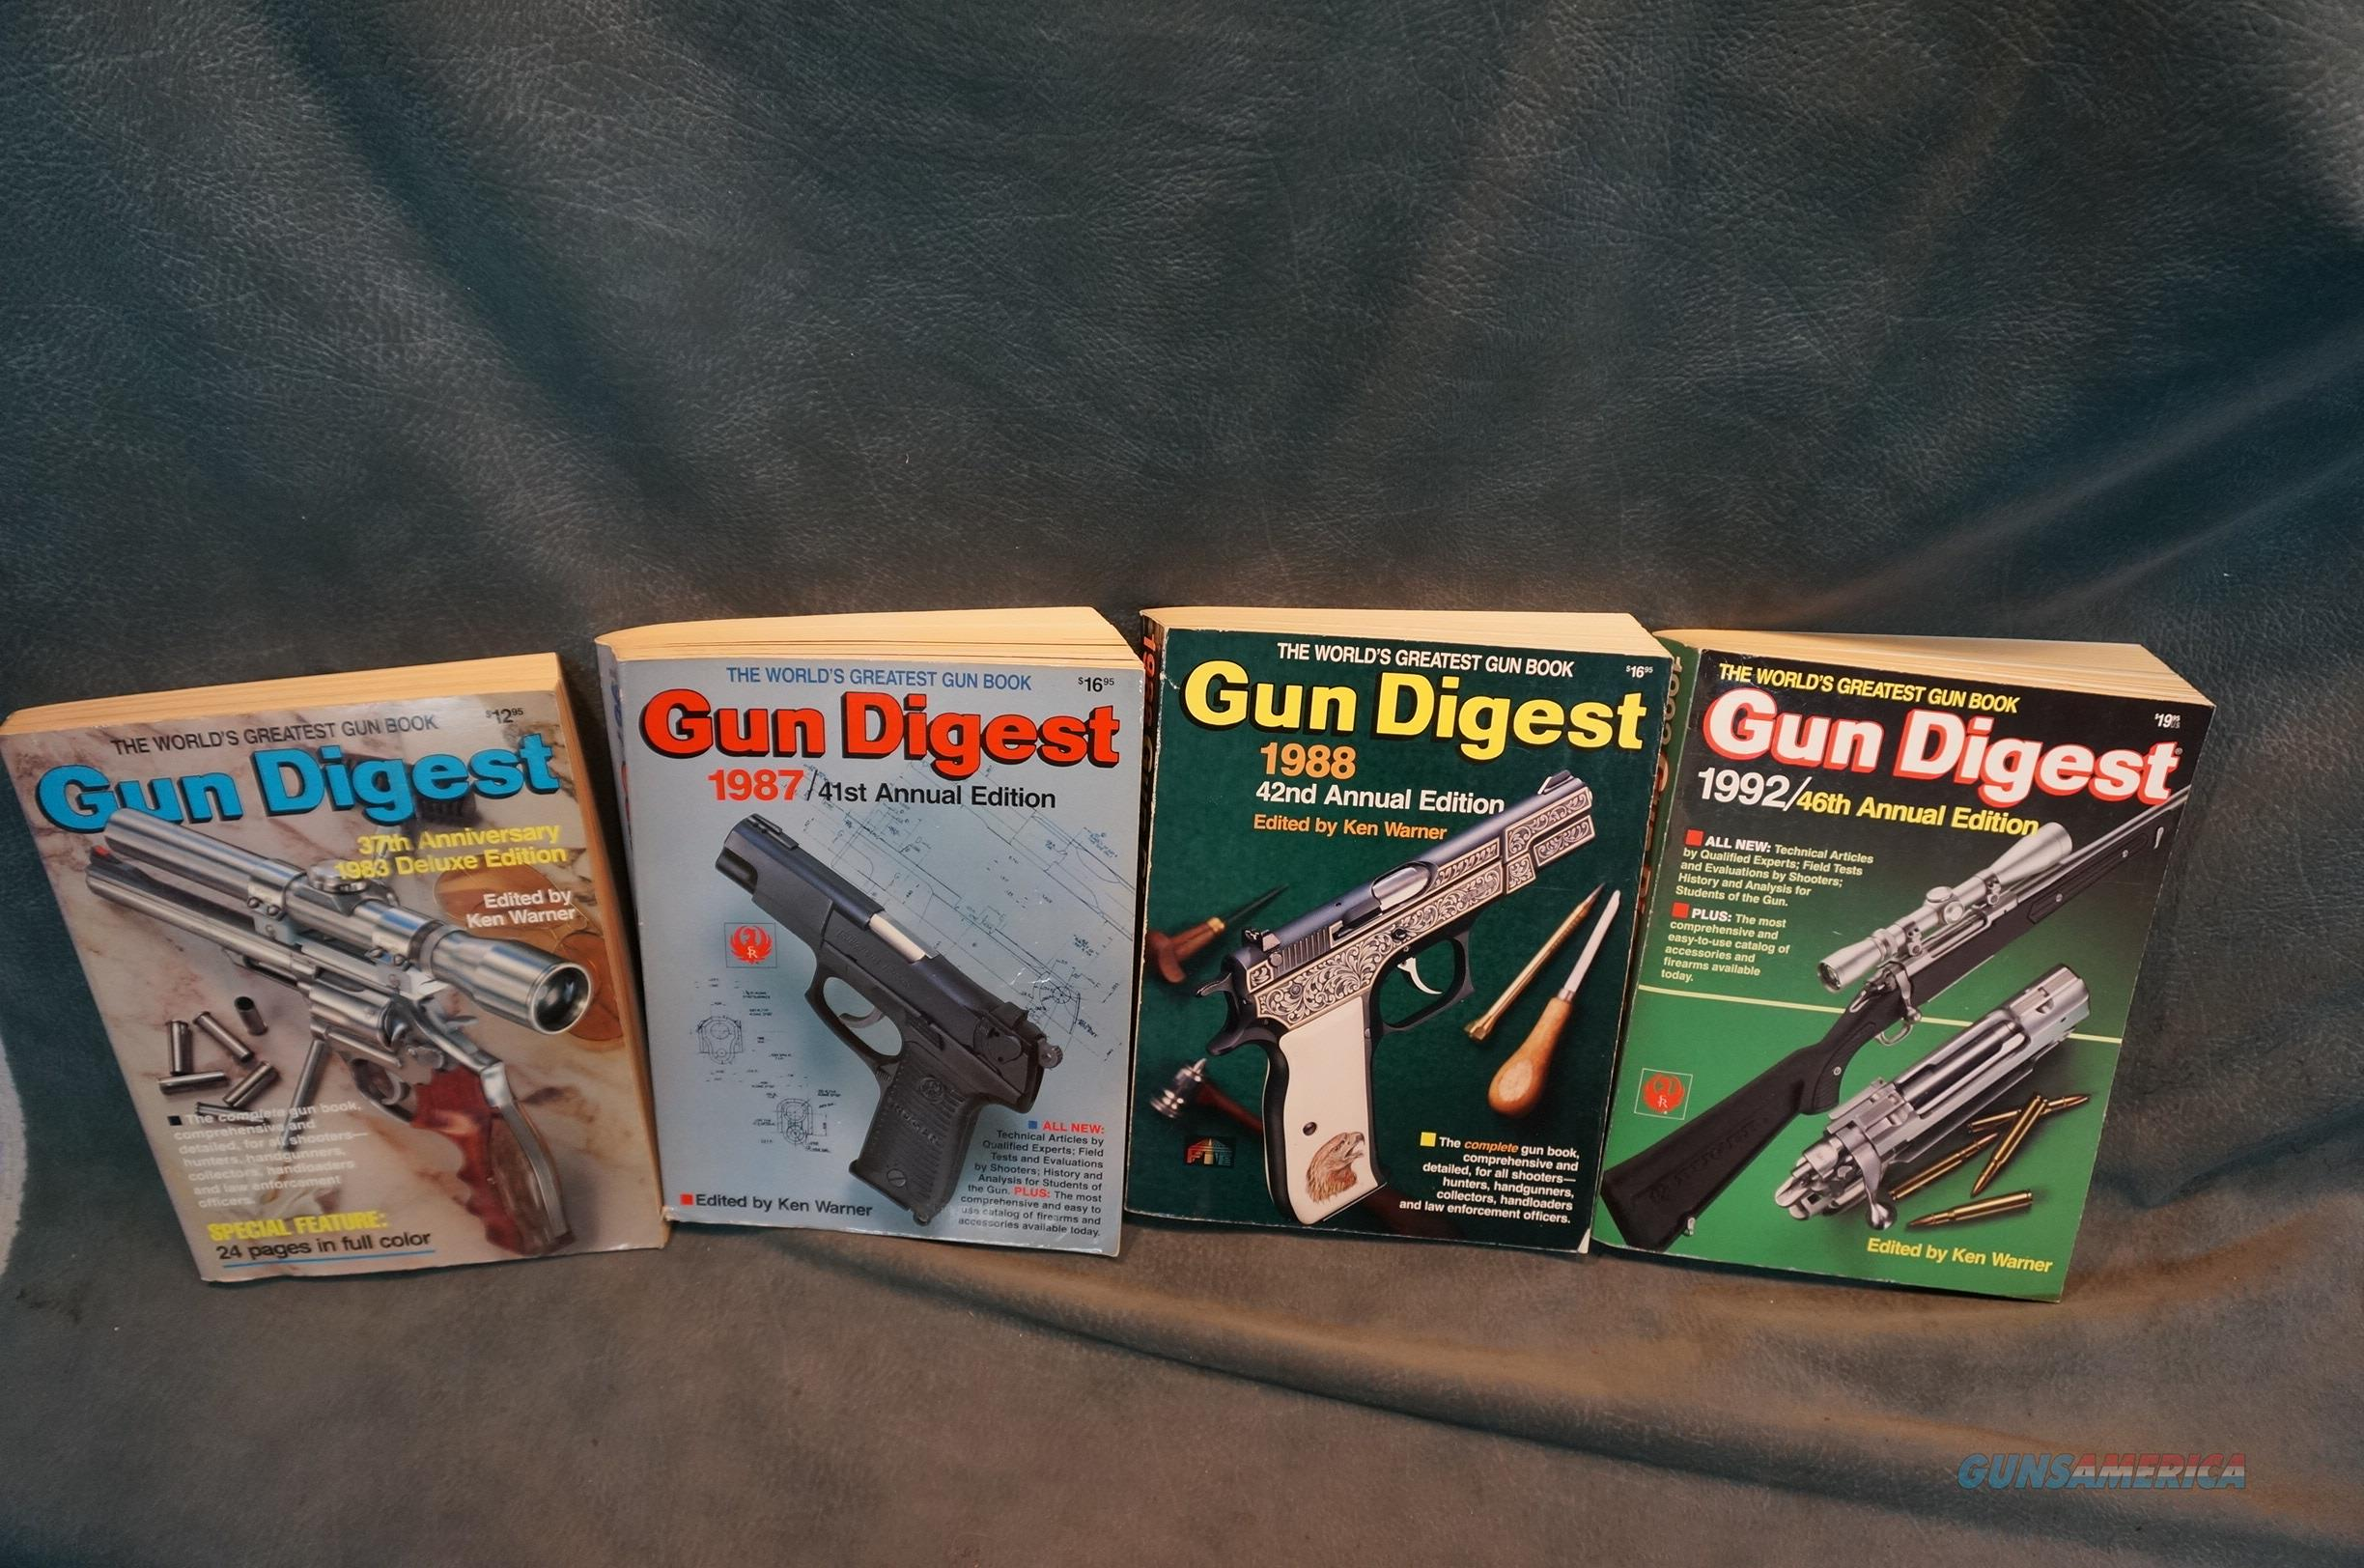 Gun Digests 1983,1987,1988 and 1992 all for $20!  Non-Guns > Books & Magazines